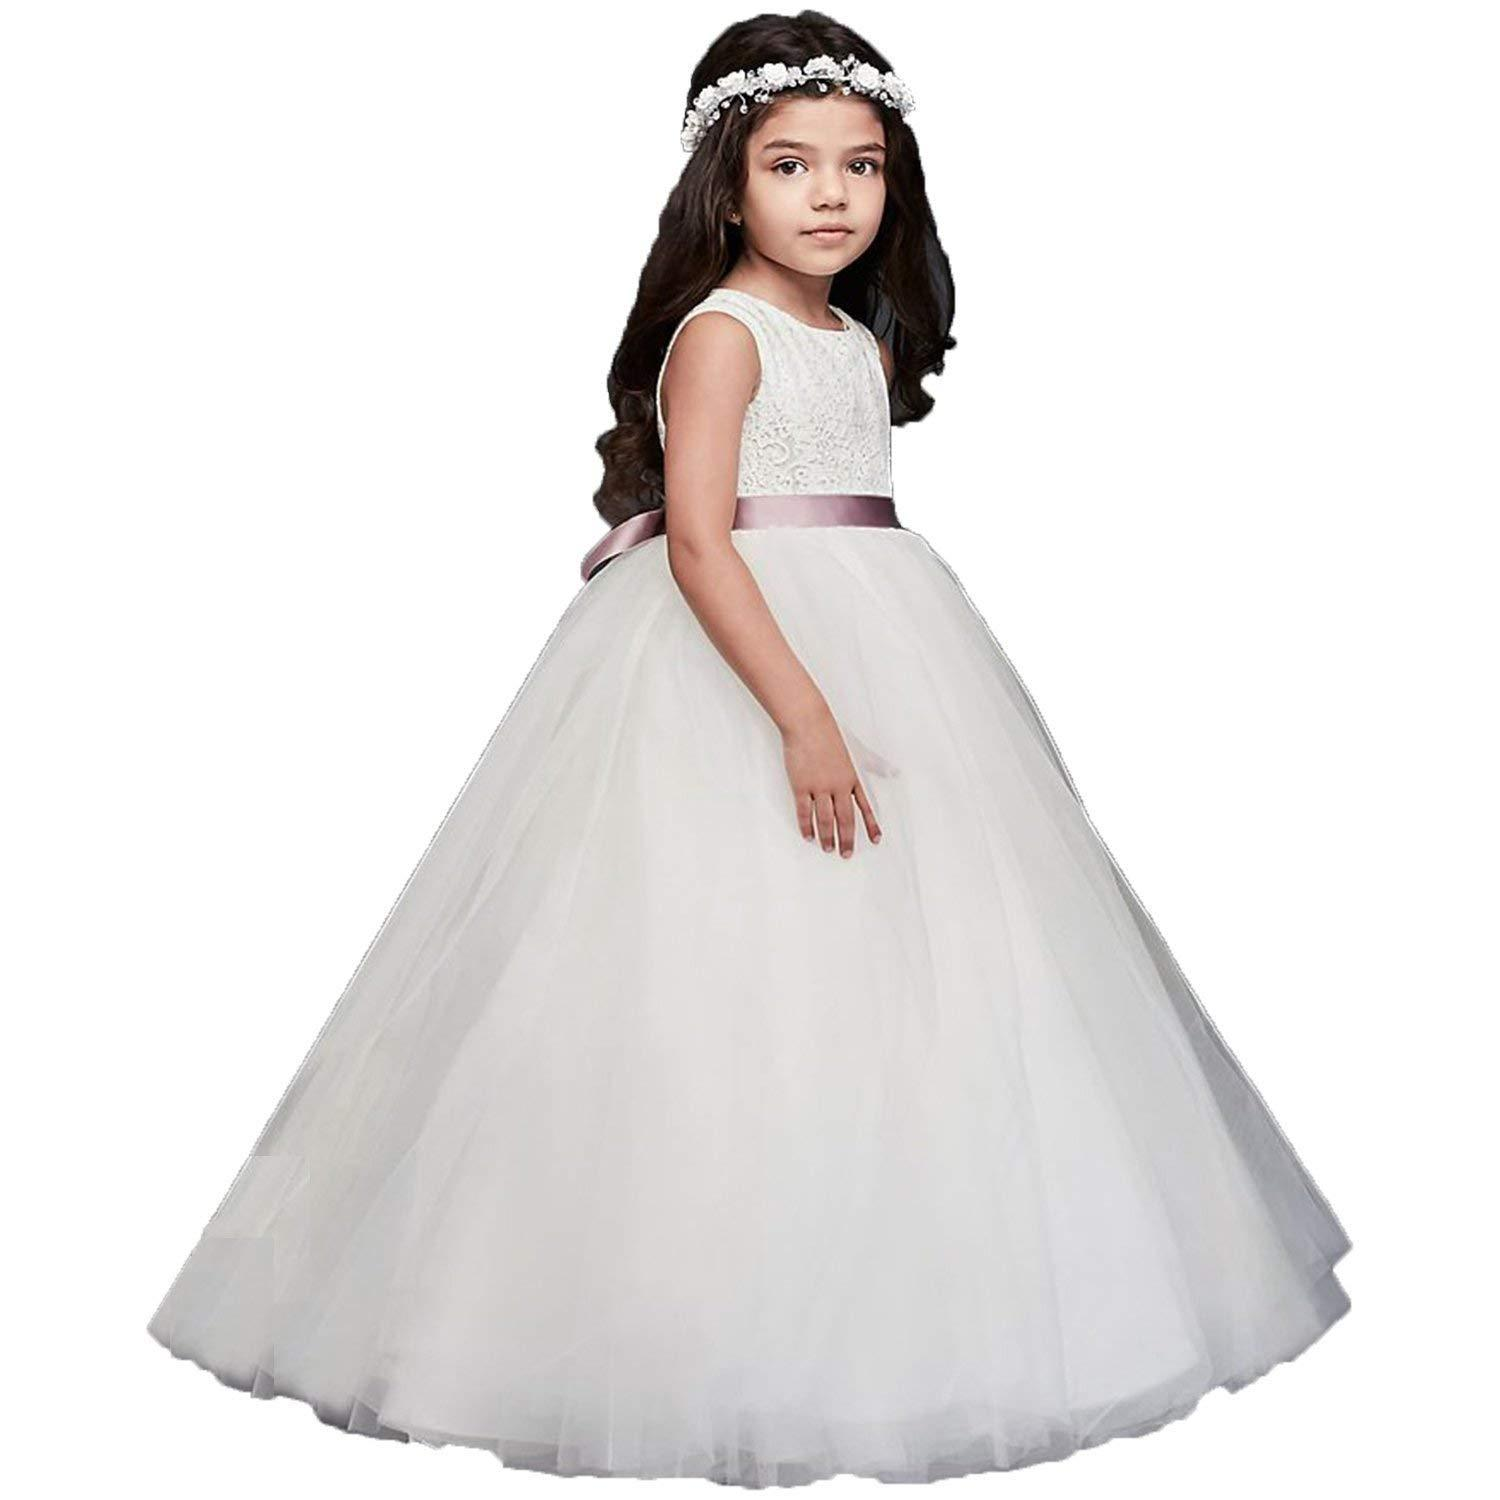 51309df4bc25 Ivory Fancy Lace Flower Girl Dress With Heart Cutout On Back 2 14 ...